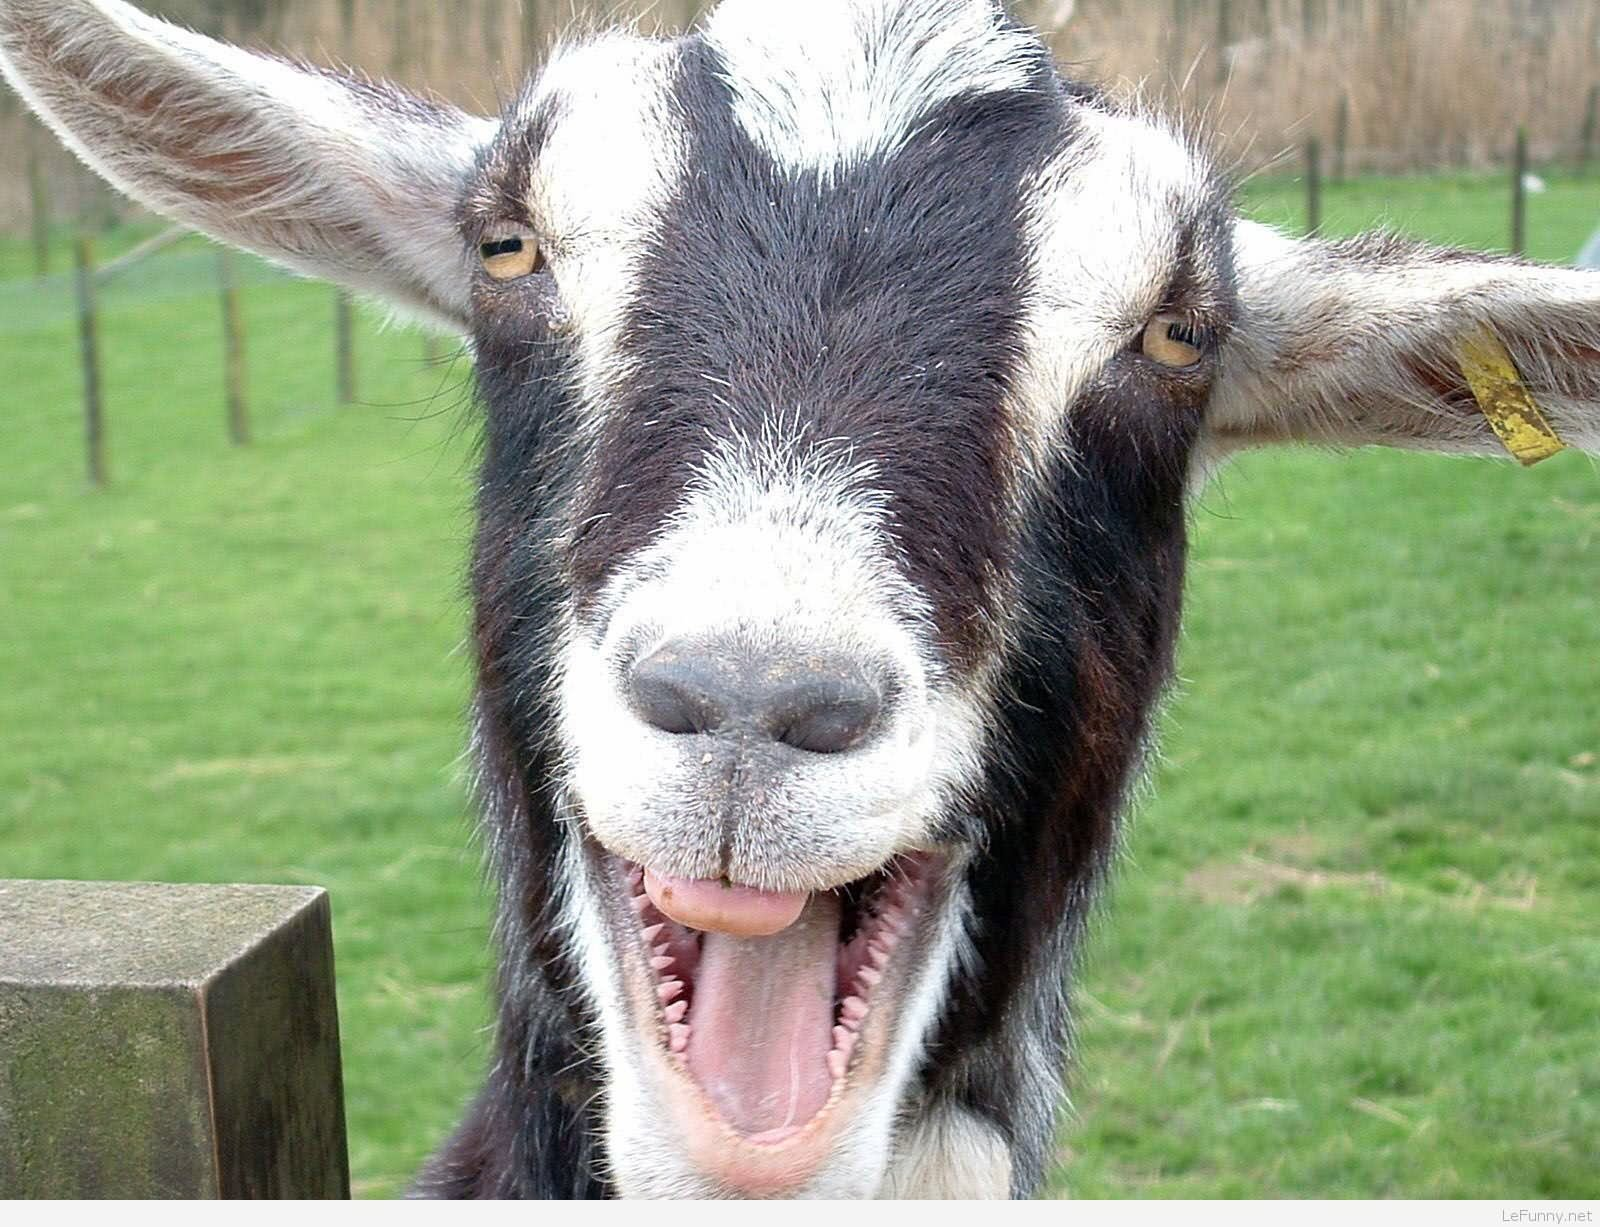 Sad Goat: 20 Funniest Goat Face Pictures That Will Make You Laugh